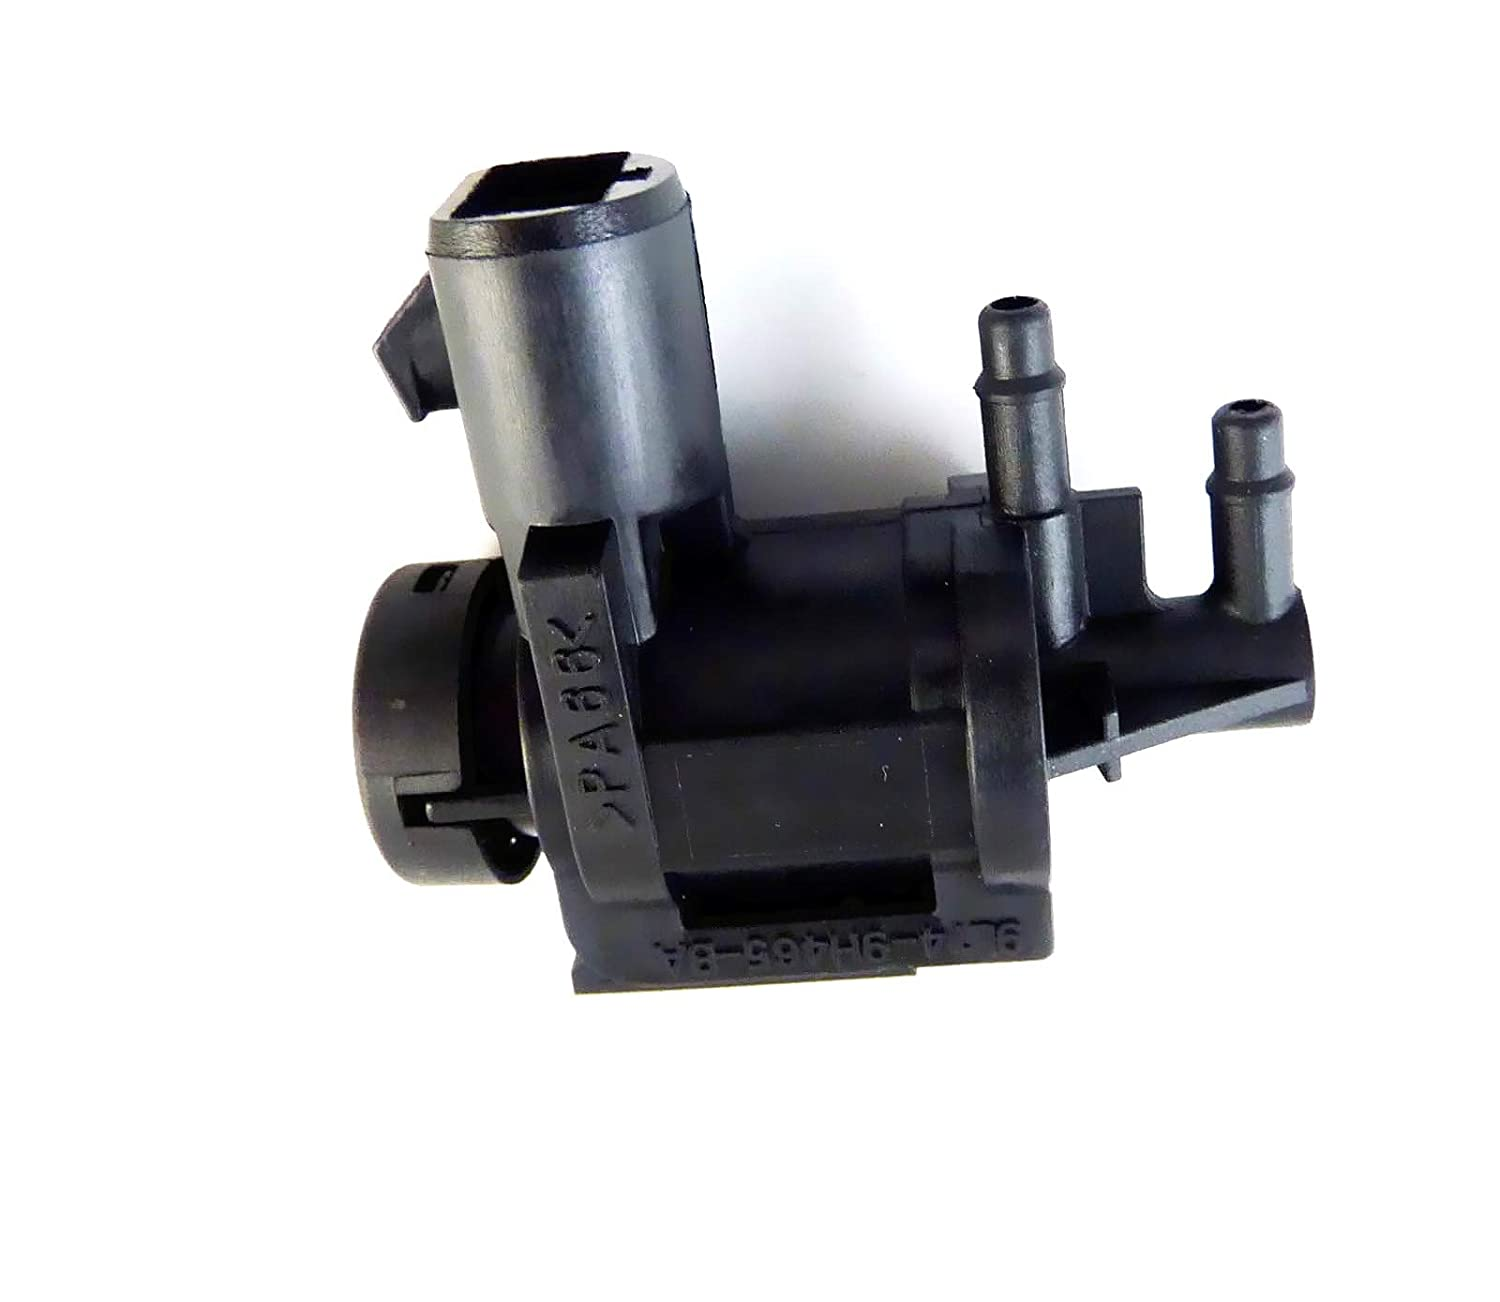 I-Joy 9L14-9H465-BA Vacuum Solenoid Valve 4WD 6L3Z-9H465-A 7L1Z-9H465-B 6L3Z-9H465-A Fits Ford F-150 Lobo F-250 Expedition